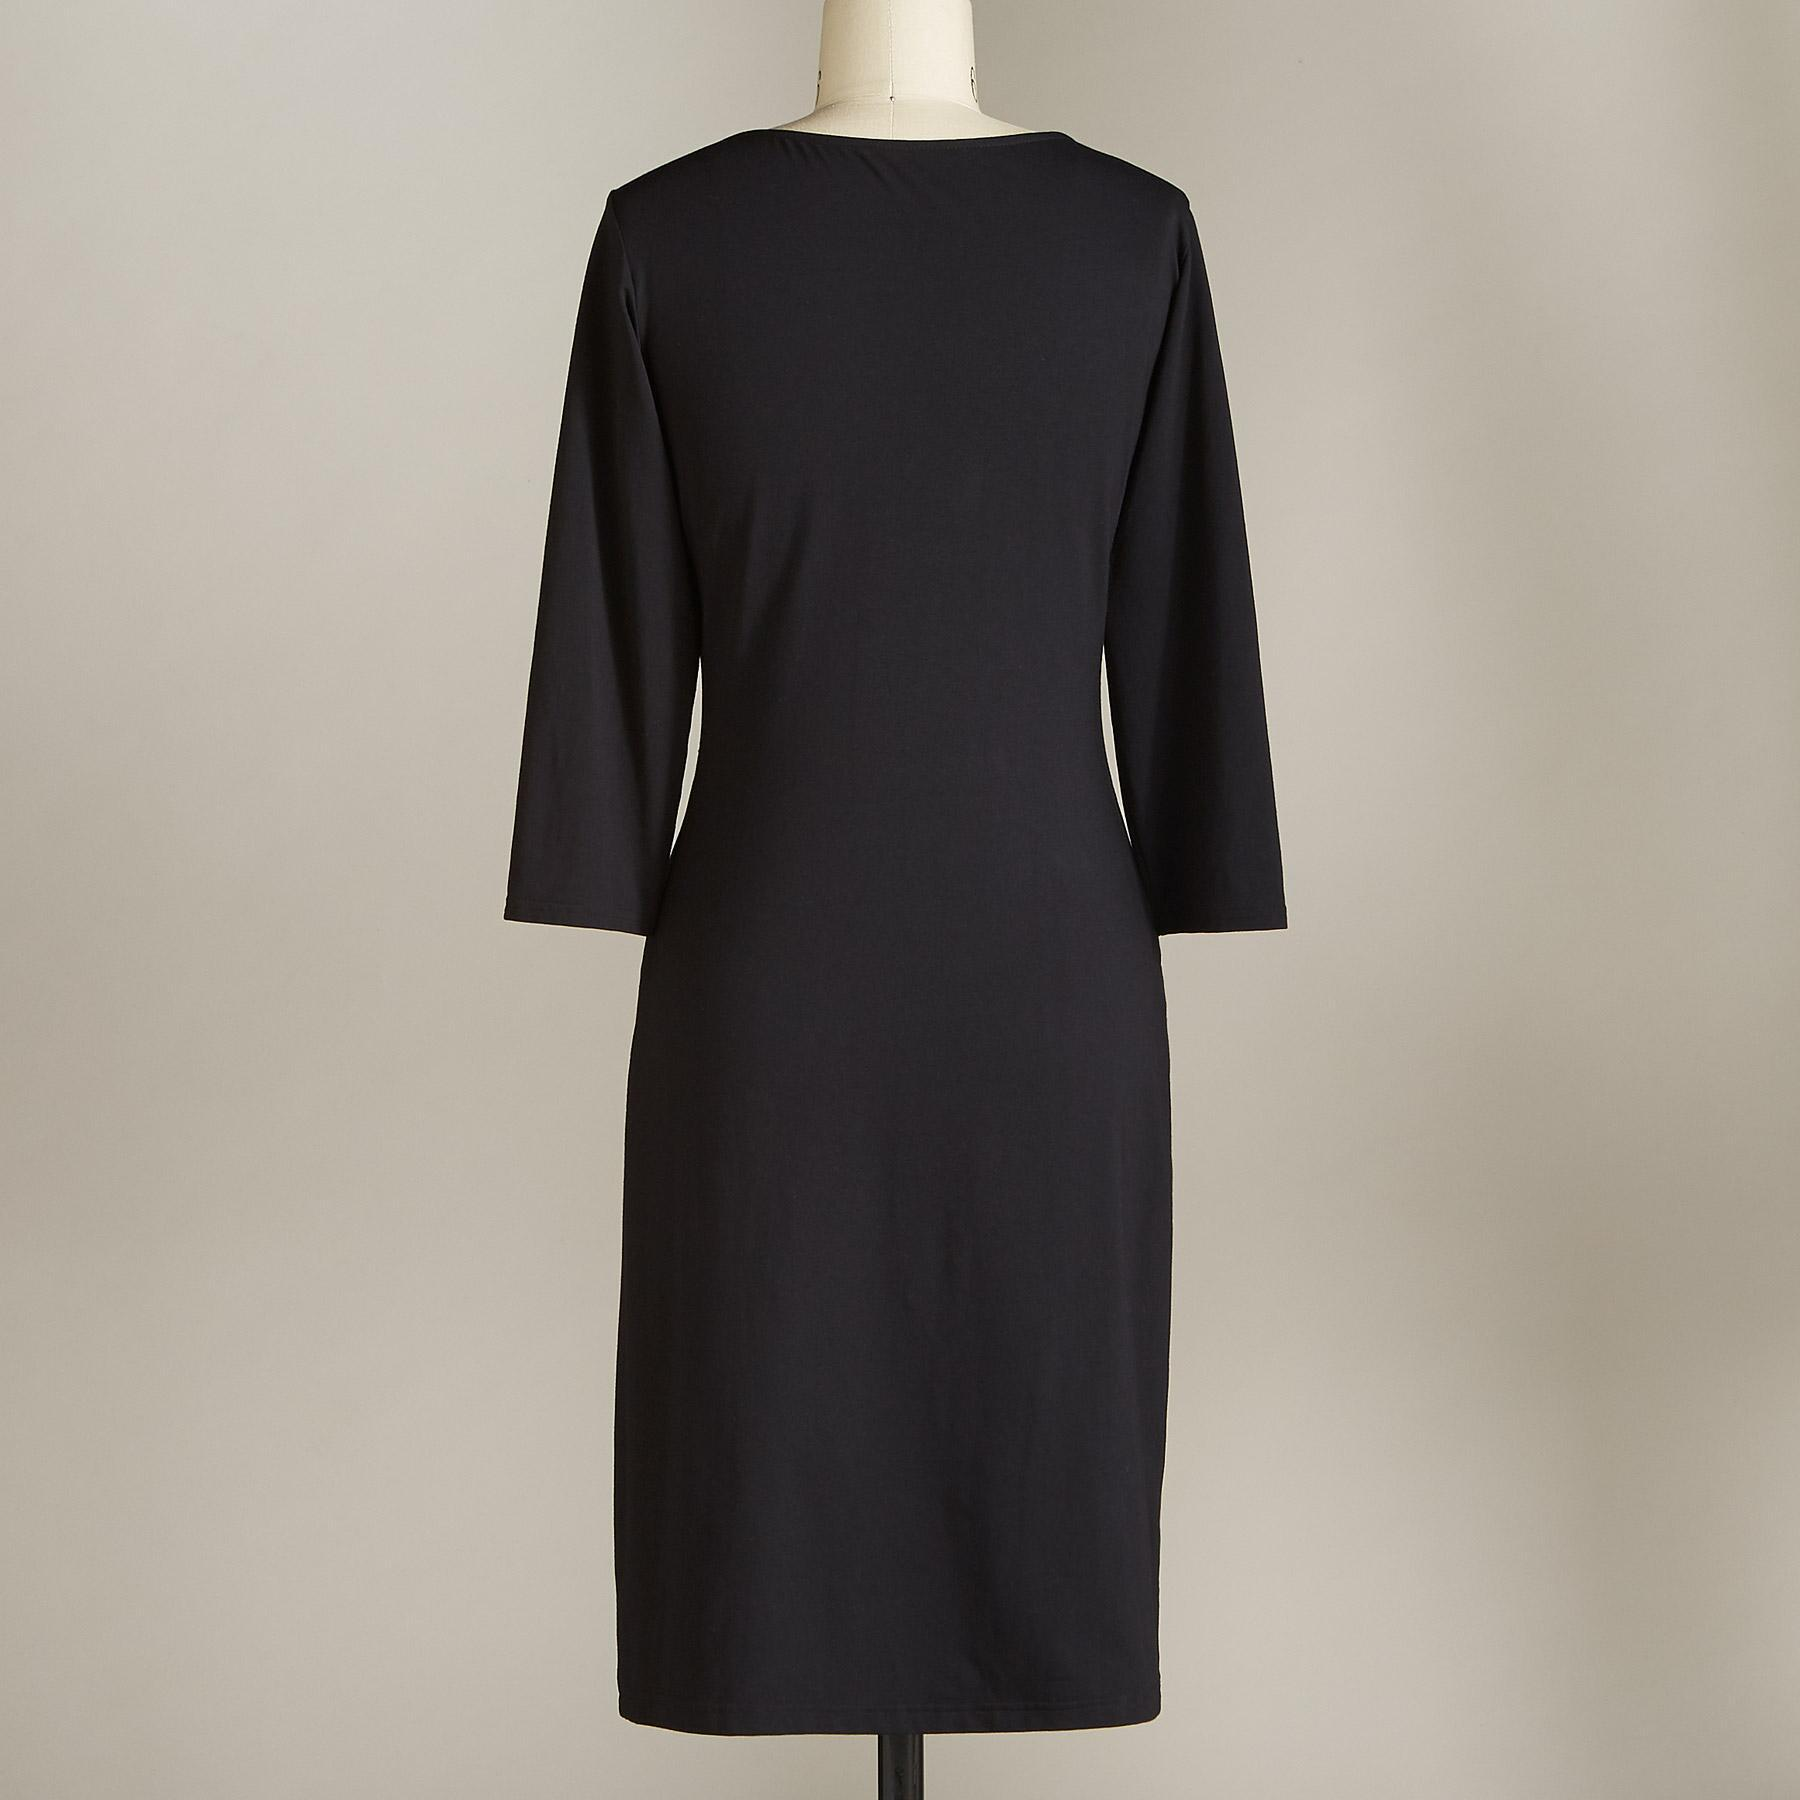 UNMISTAKABLE BEAUTY DRESS - PETITES: View 2